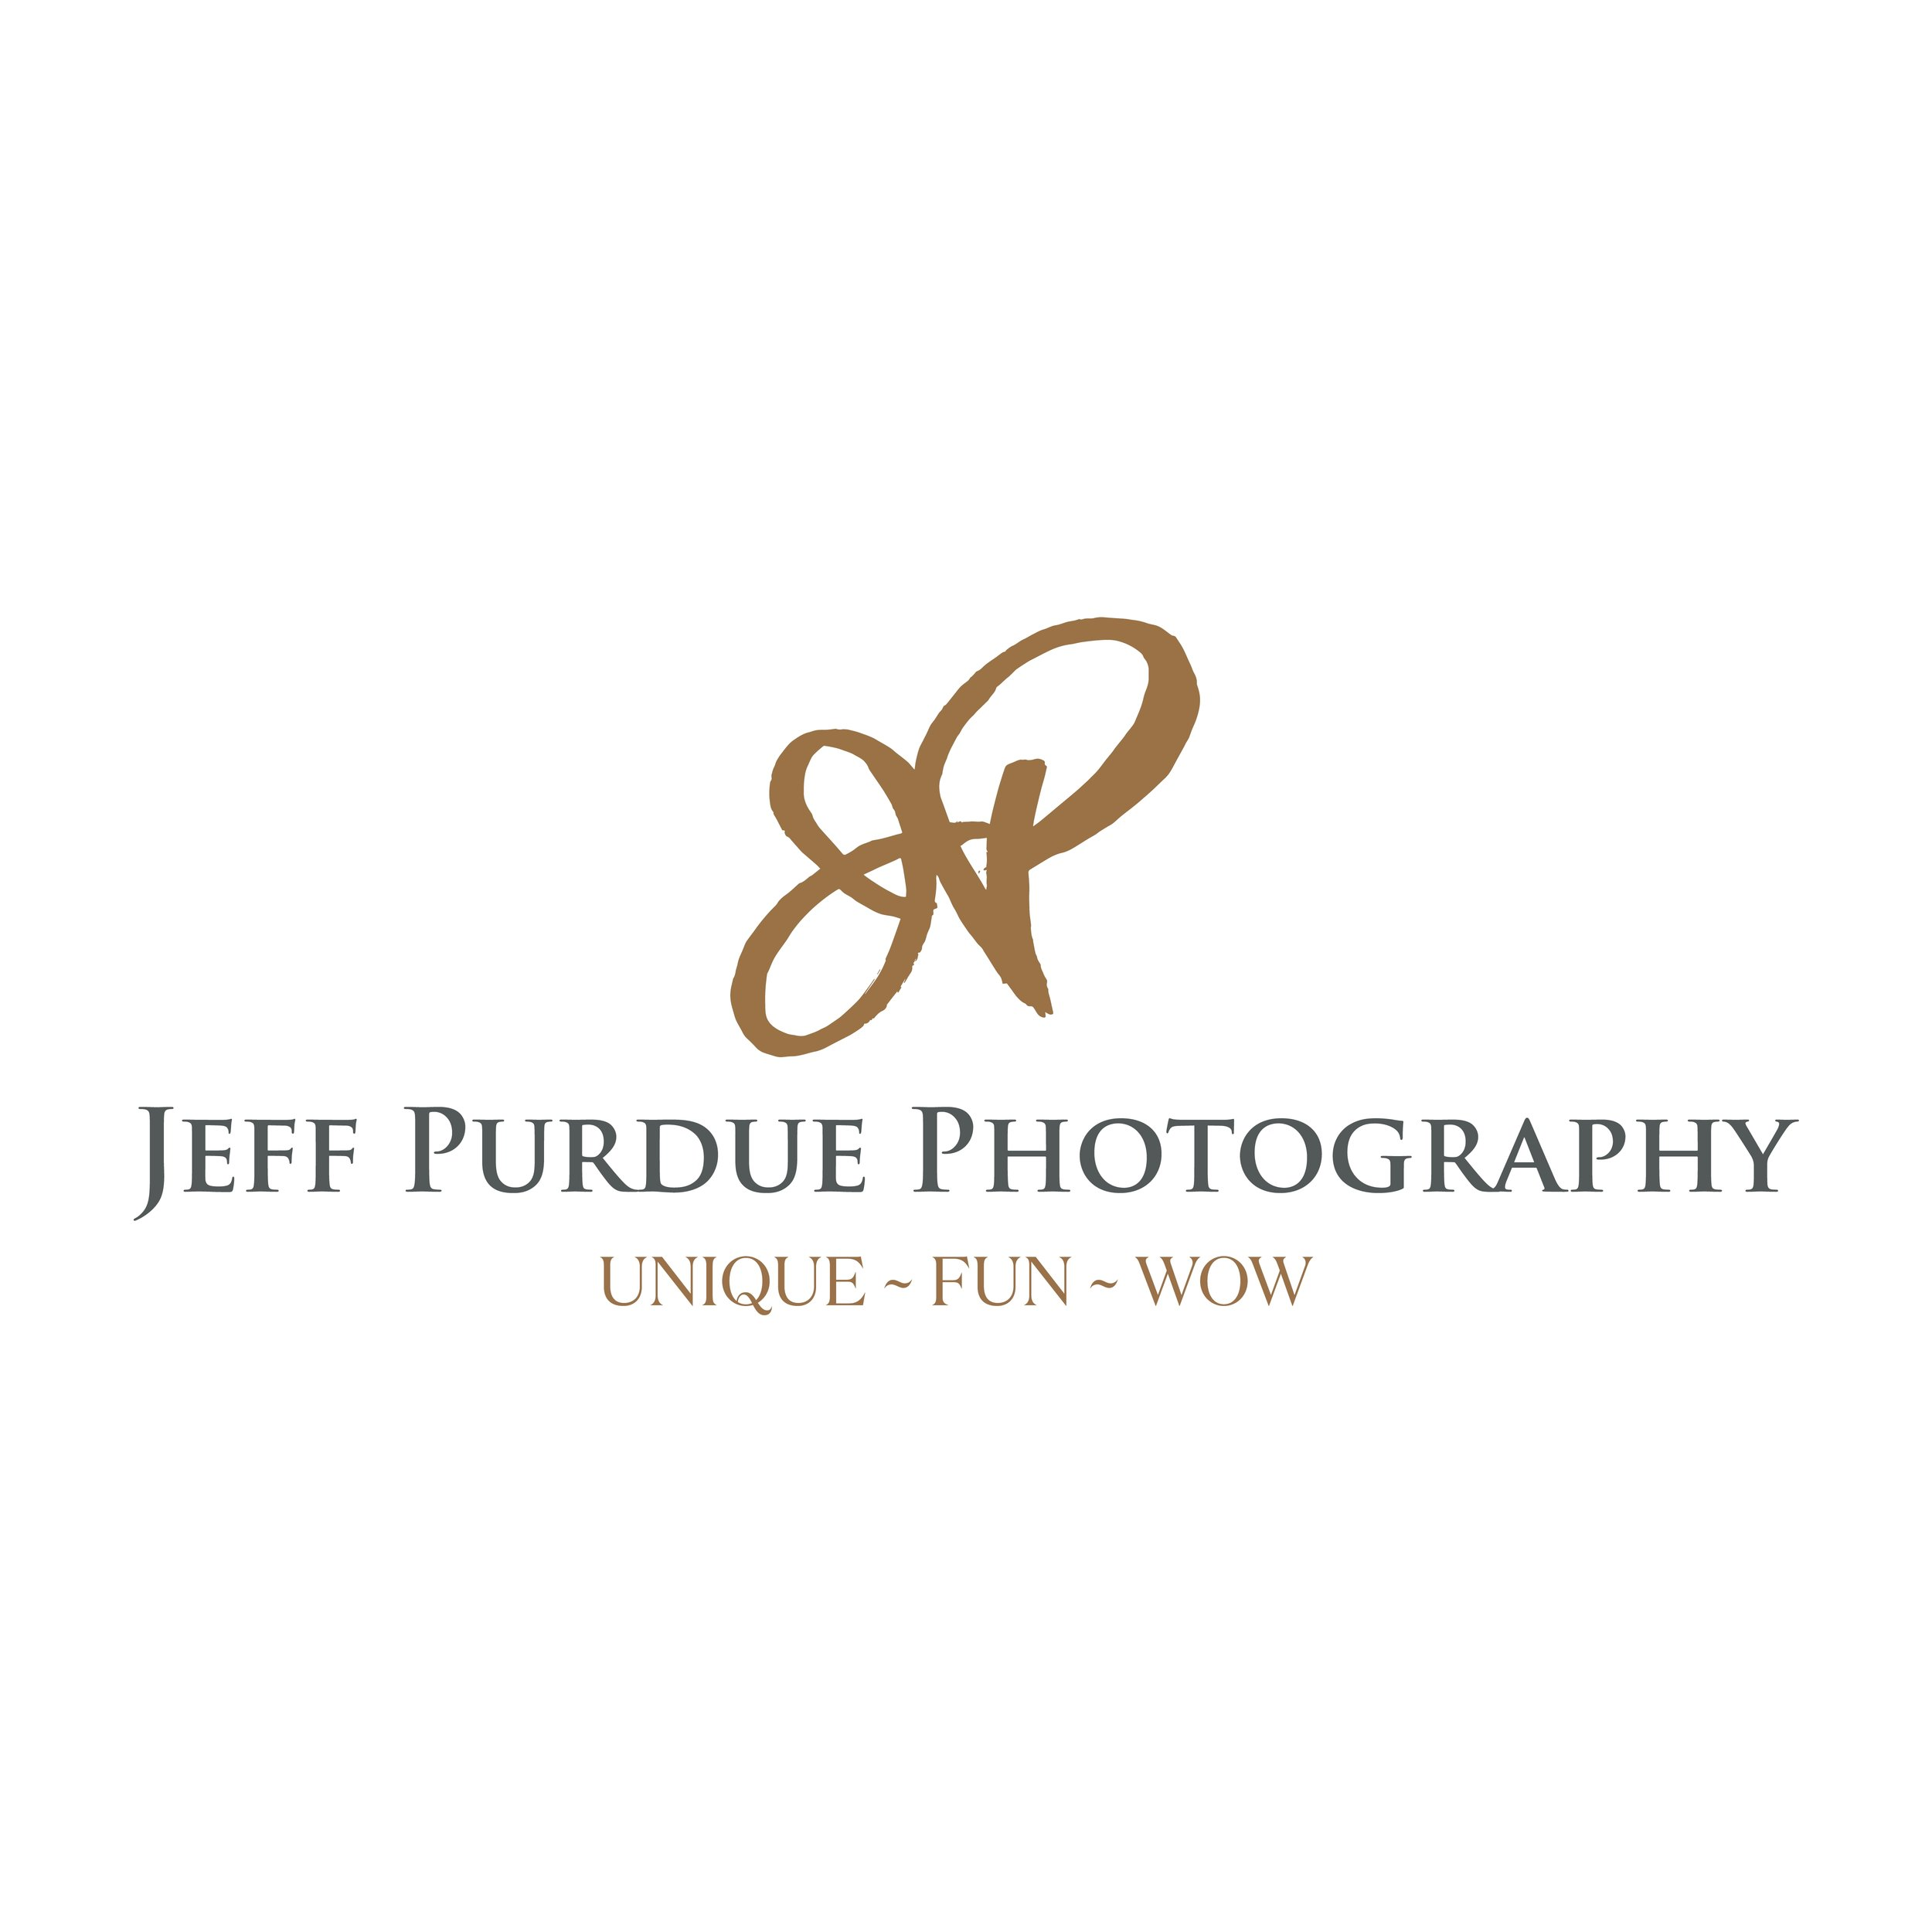 Jeff Purdue Full Gold Black Transparent Logo SQUARE.jpg